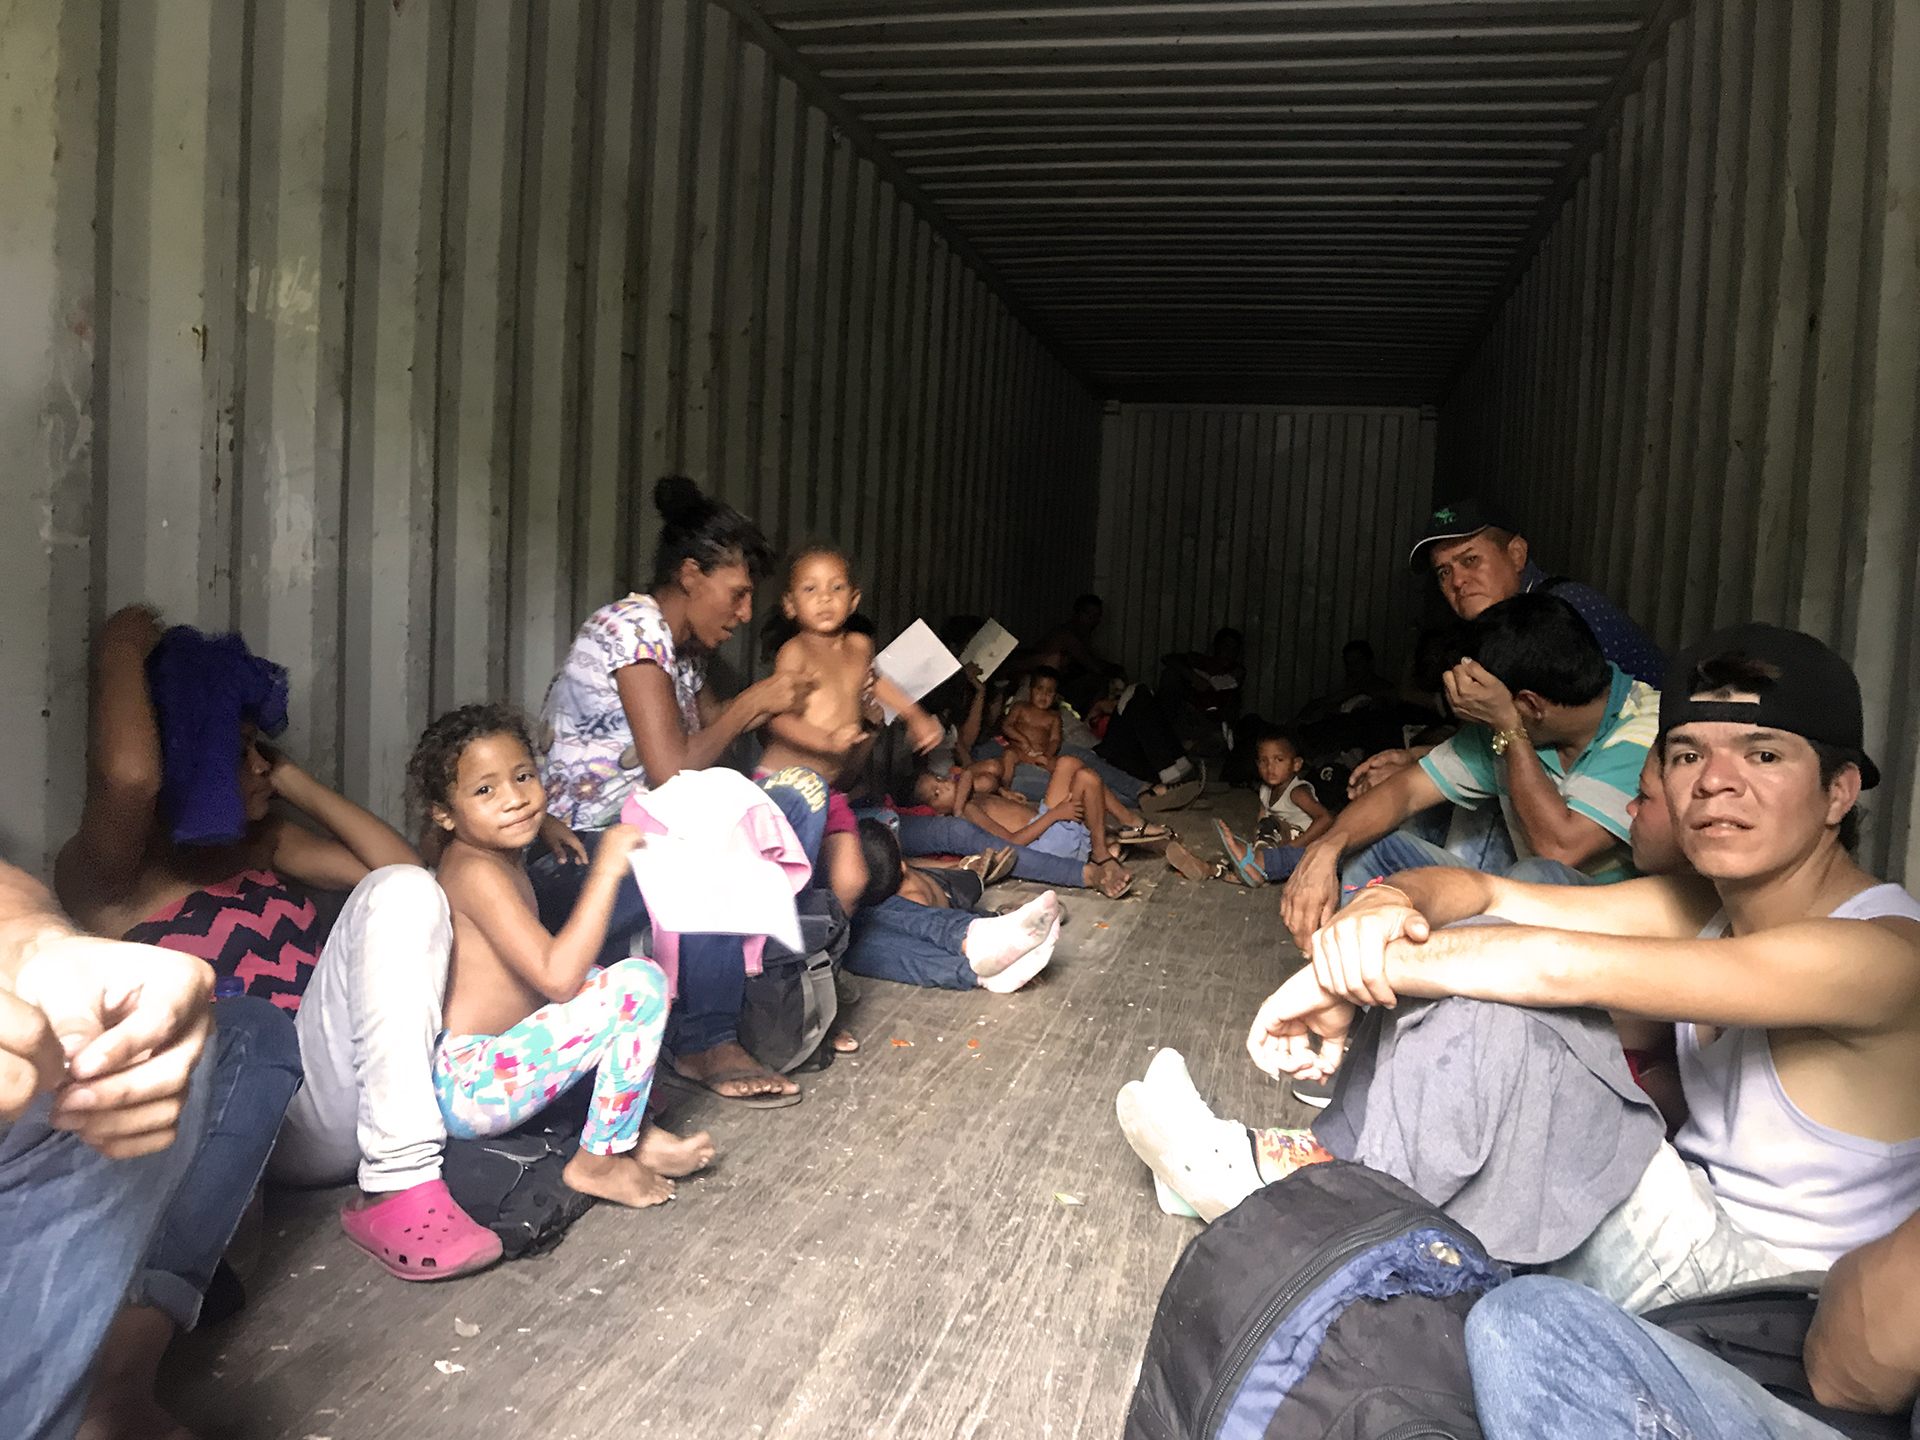 A group of men, women, and children in the back of a shipping lorry